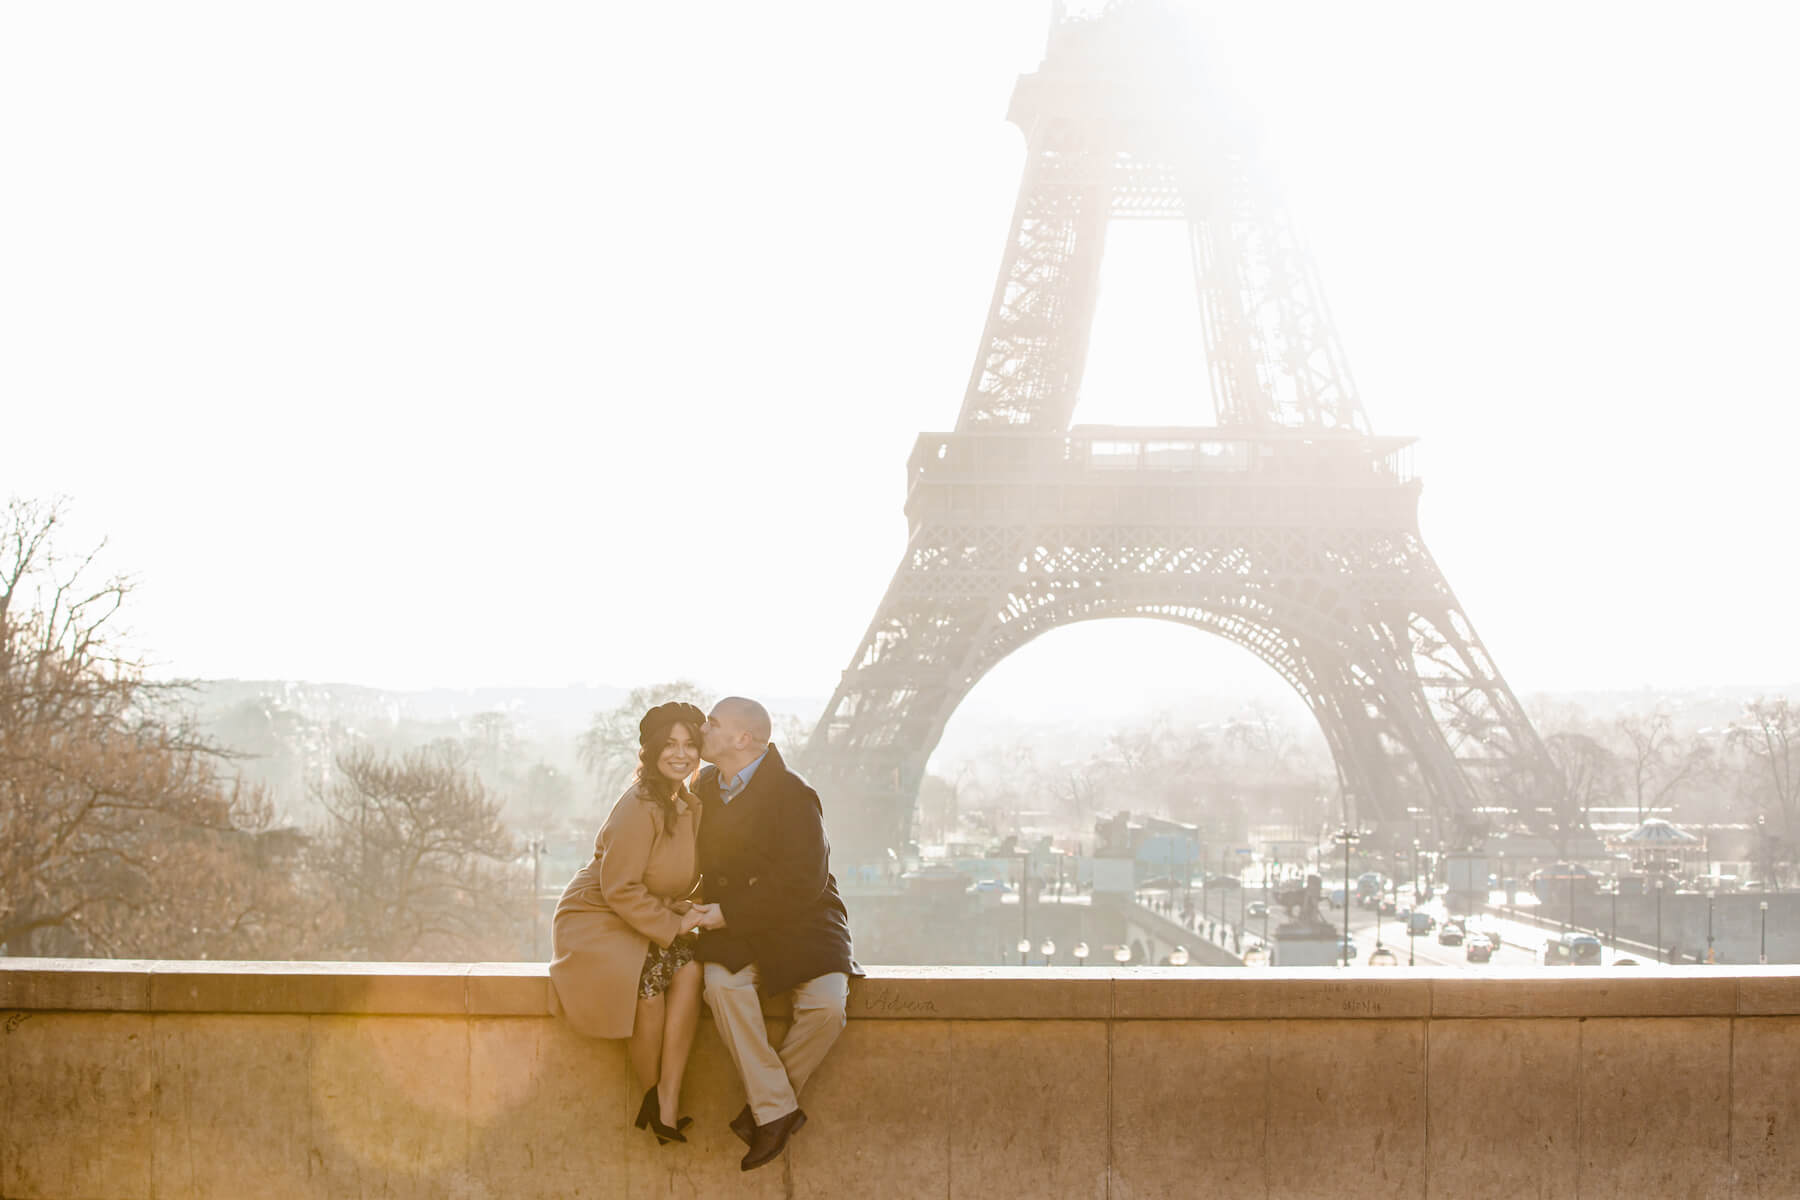 couple sitting on a ledge with the Eiffel tower in the background in Paris, France